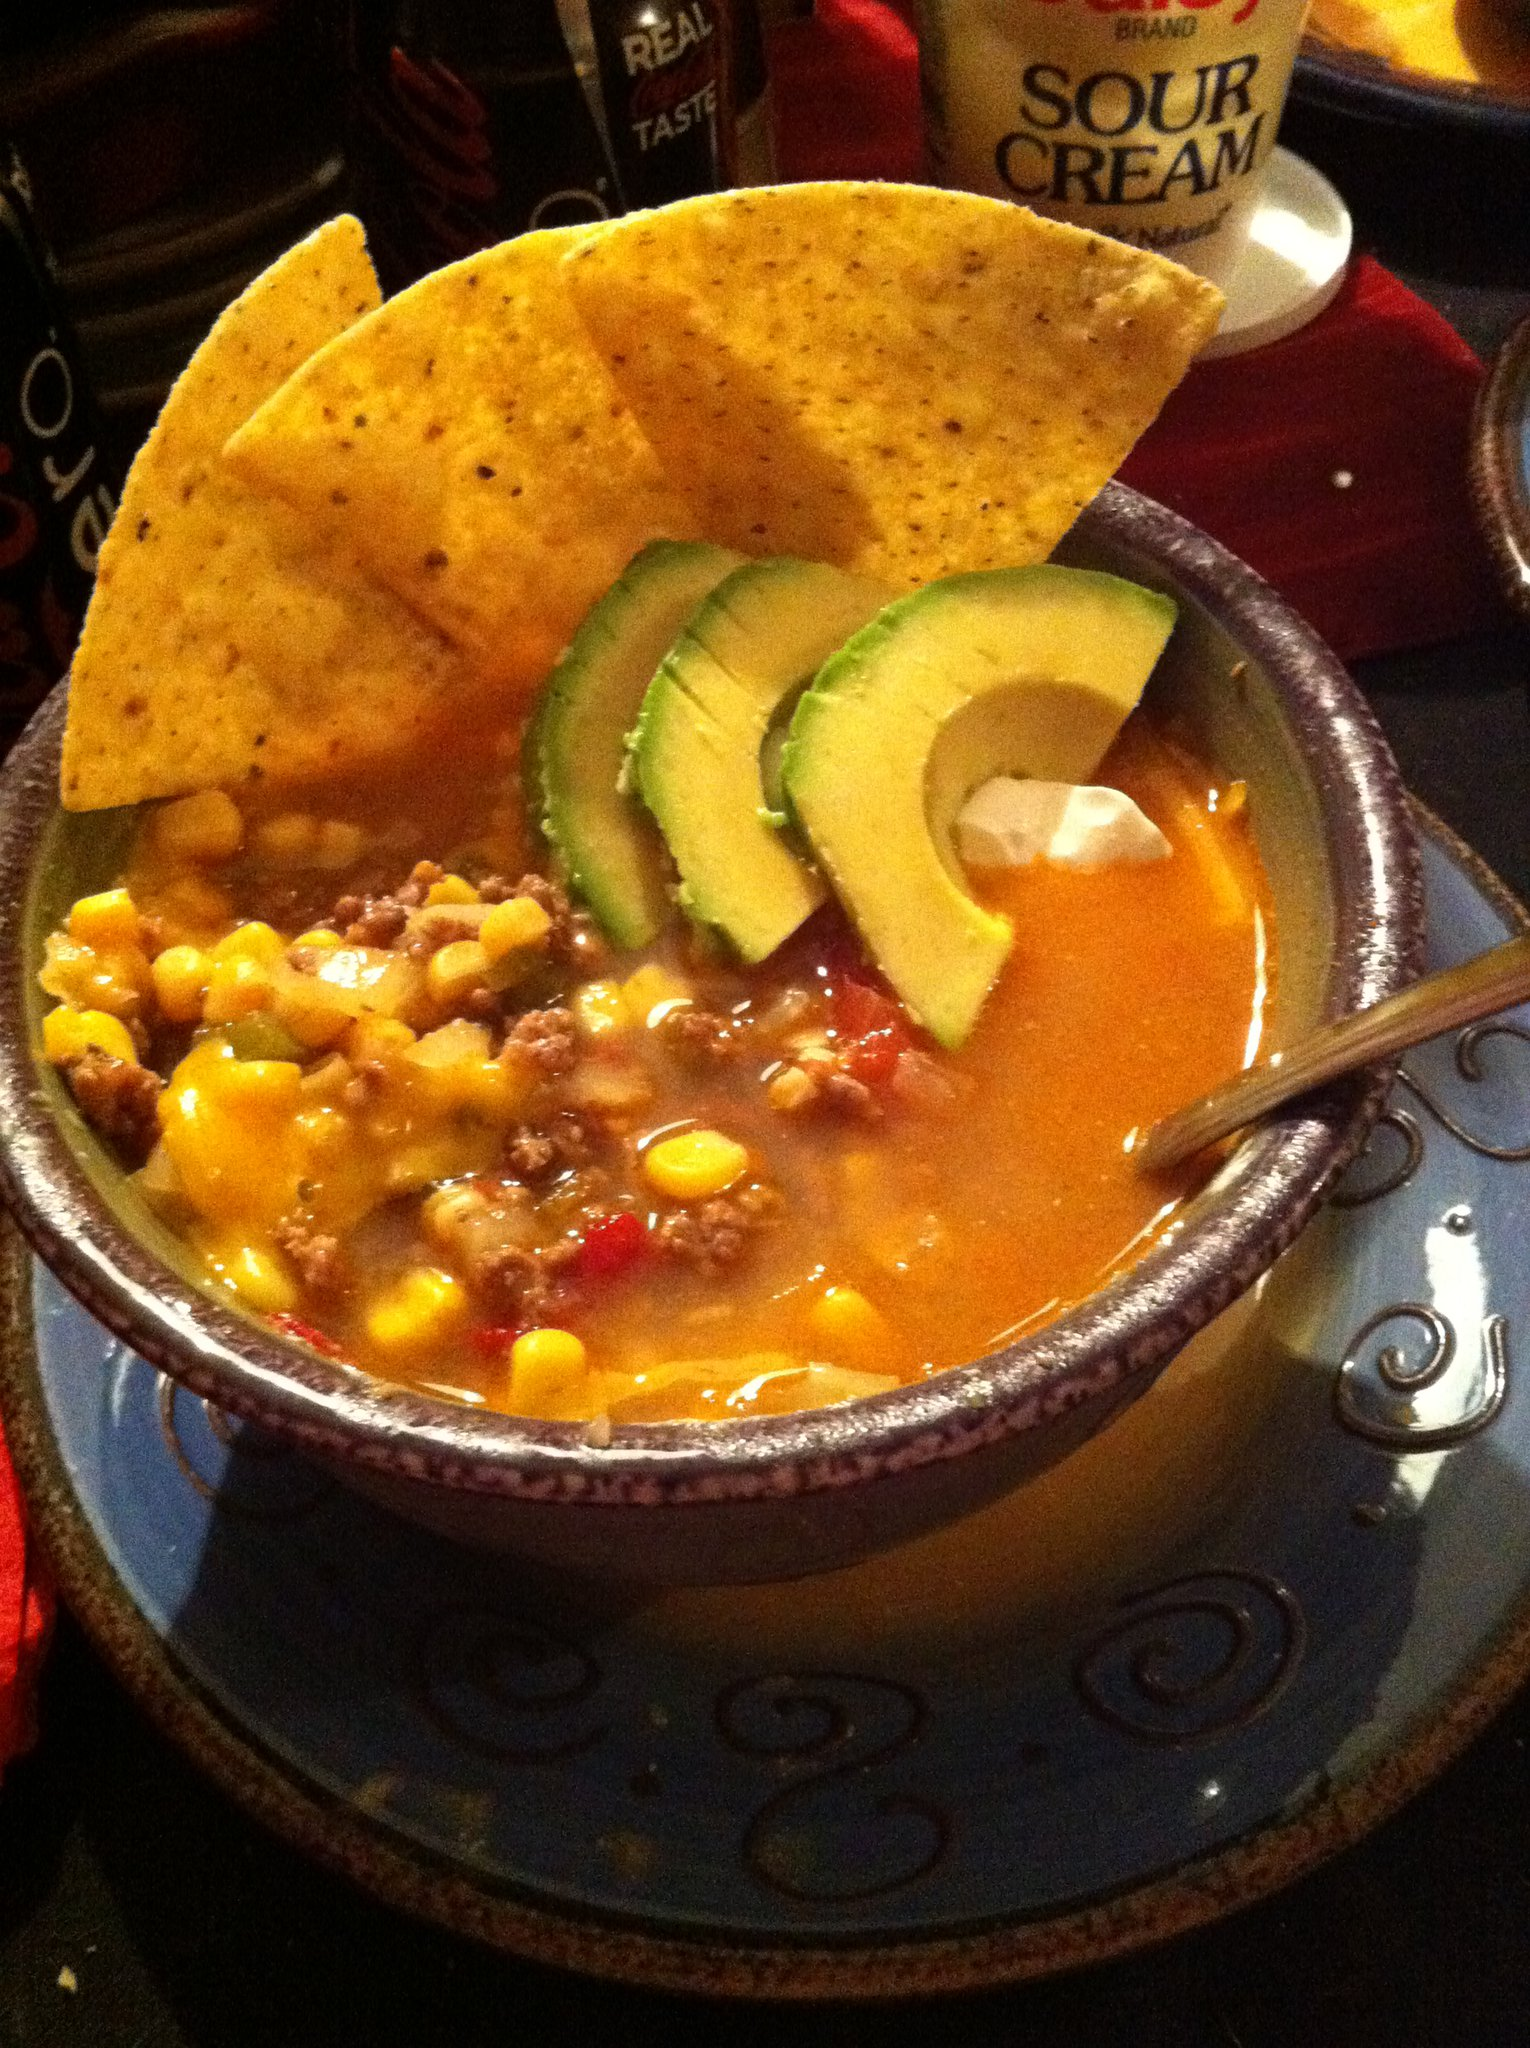 File:Taco soup.jpg - Wikipedia, the free encyclopedia